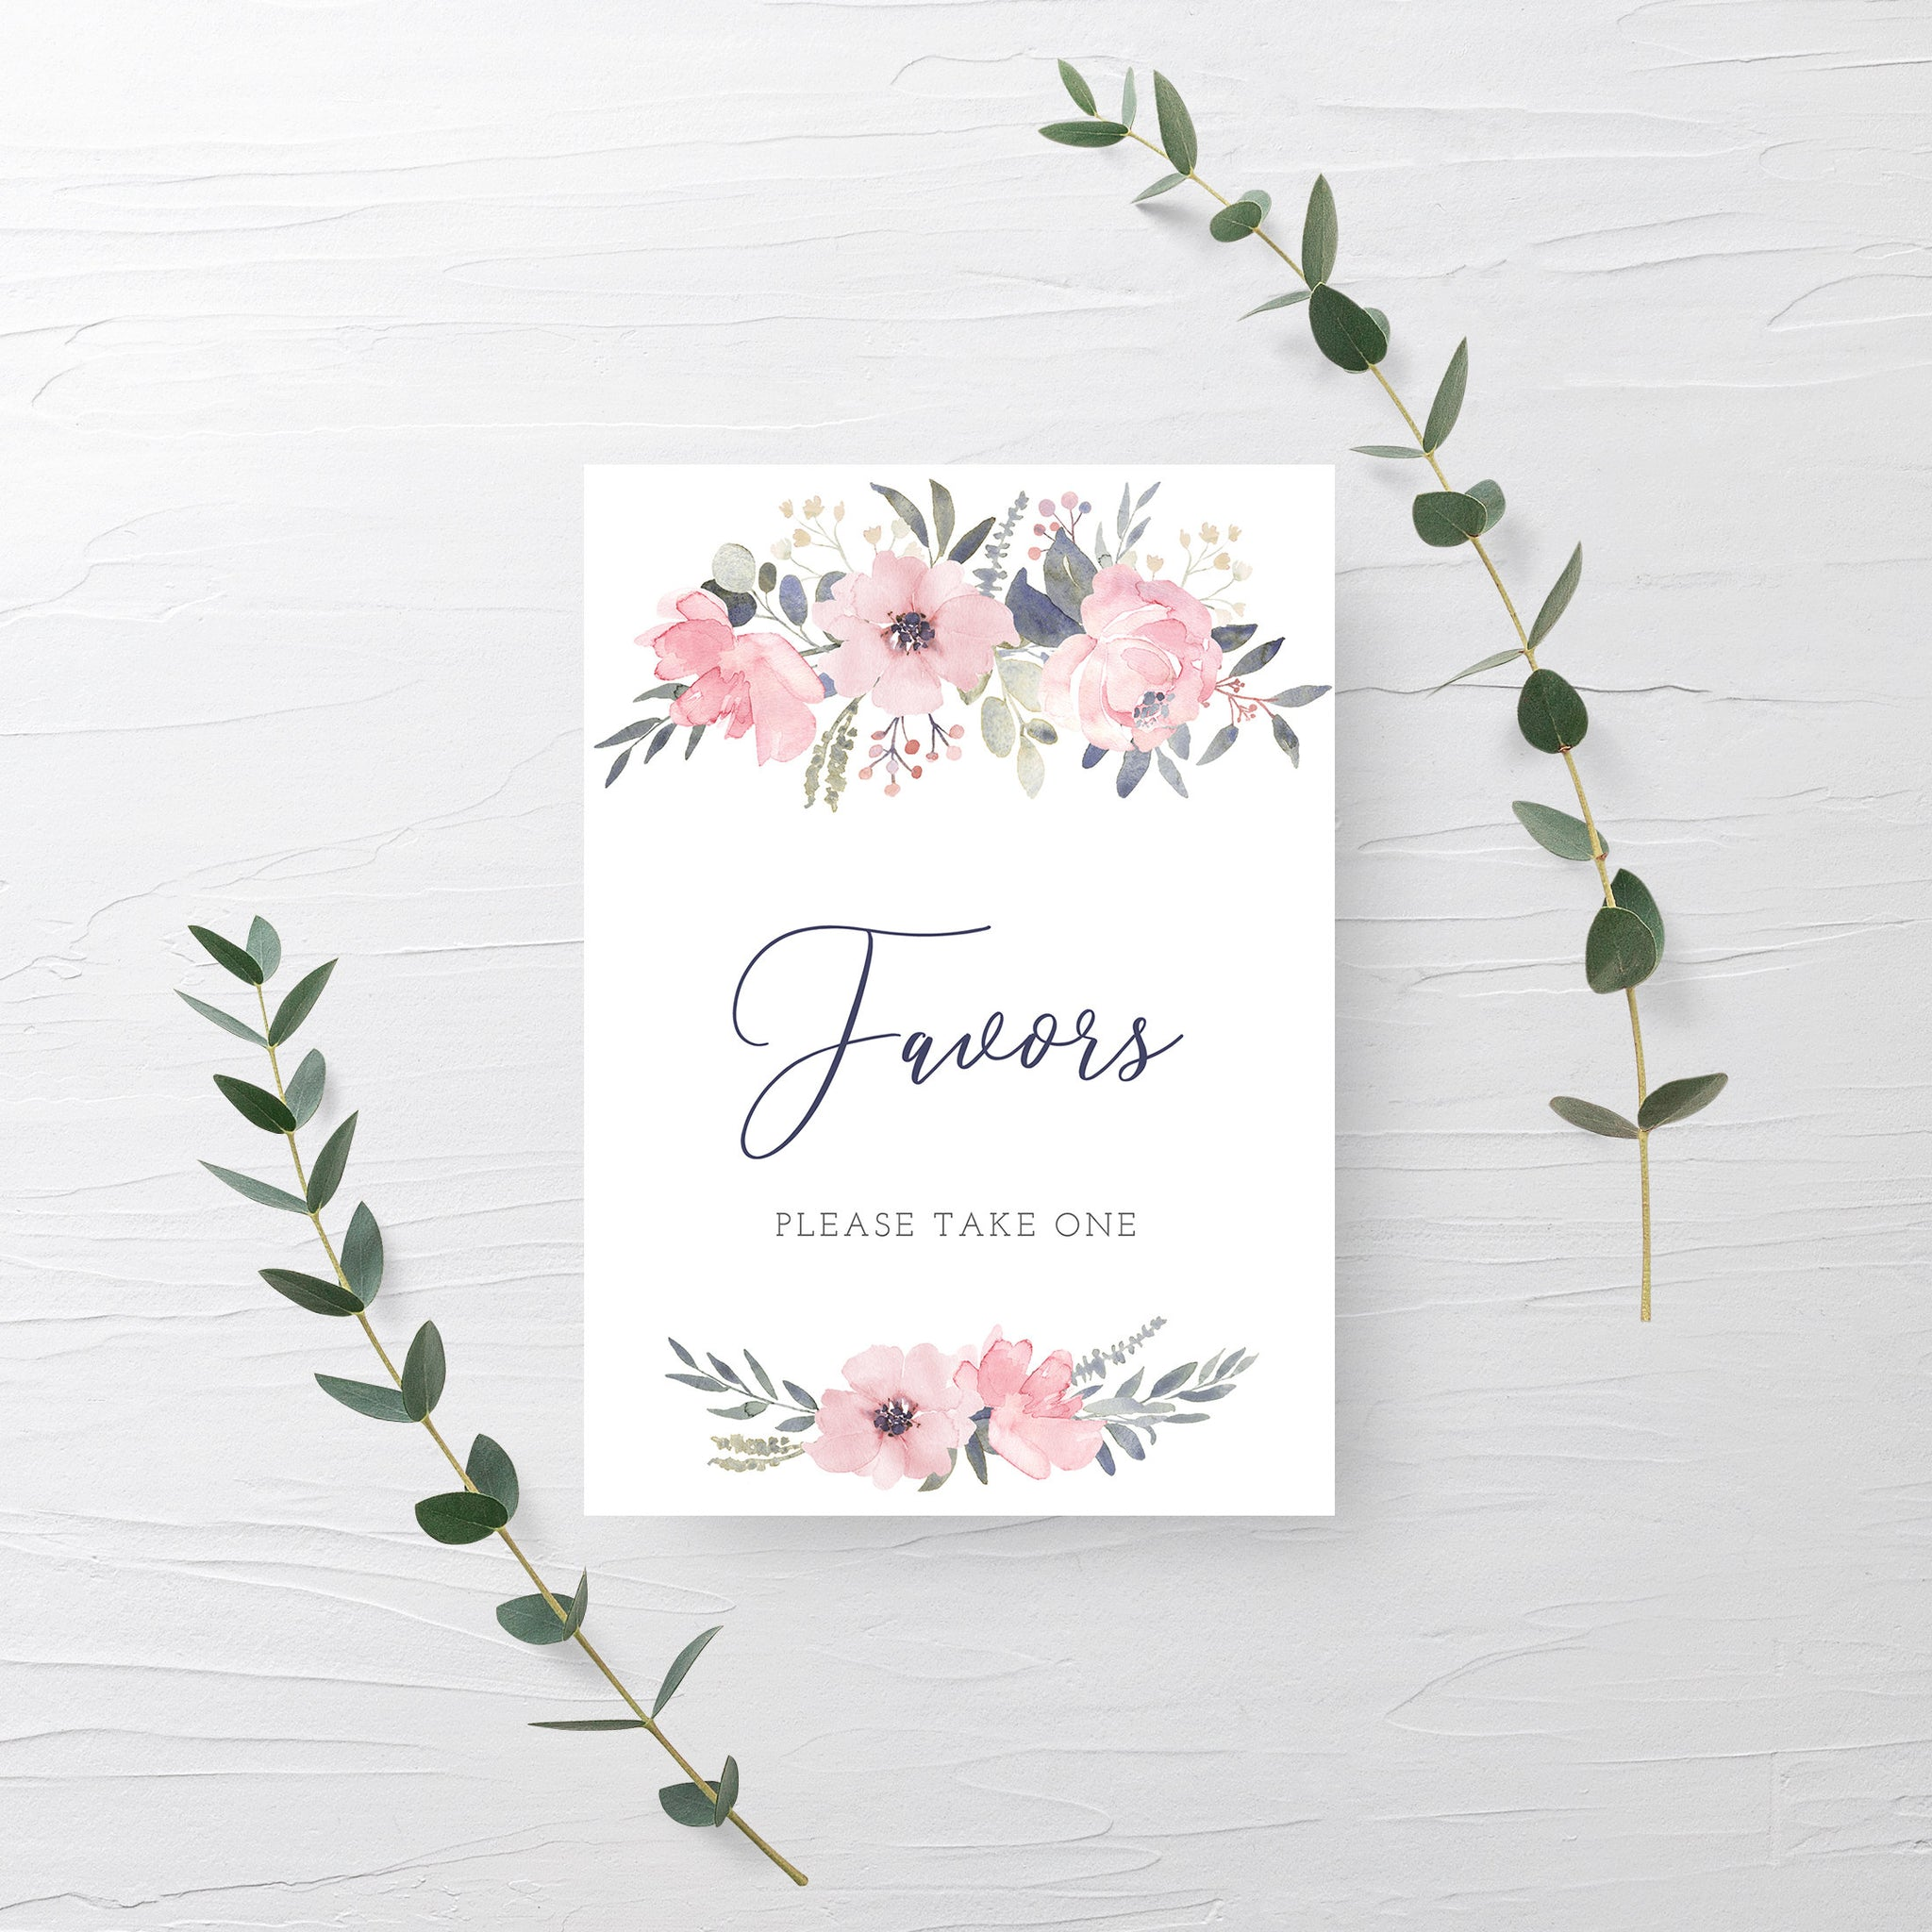 Navy and Blush Floral Favors Sign Printable INSTANT DOWNLOAD, Birthday, Bridal Shower, Baby Shower, Wedding Decorations and Supplies - NB100 - @PlumPolkaDot